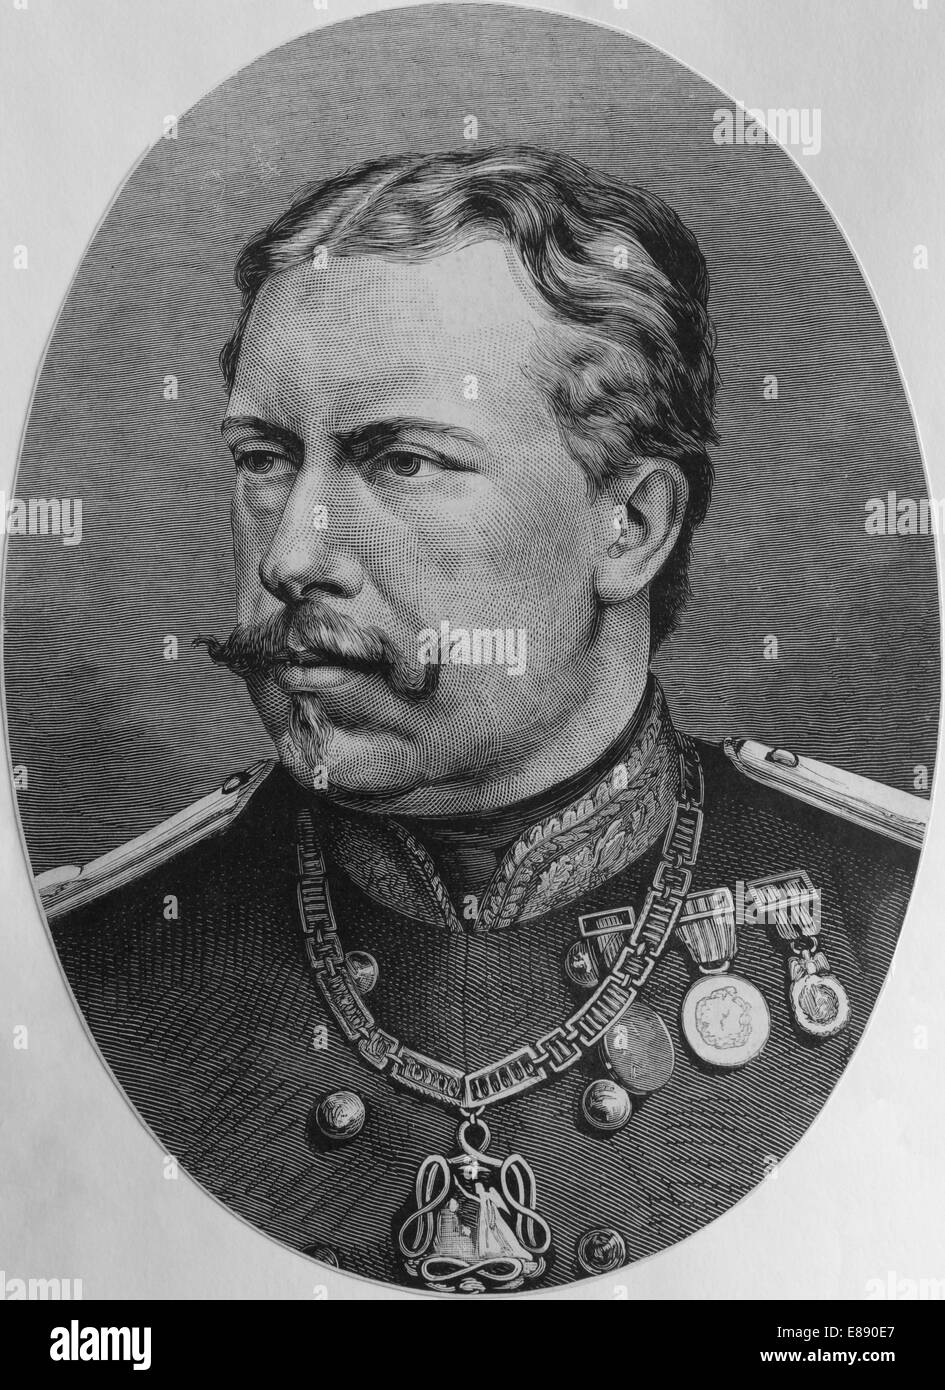 Louis I (1838-1889). King of Portugal between 1861-1889. Engraving, 19th century. - Stock Image